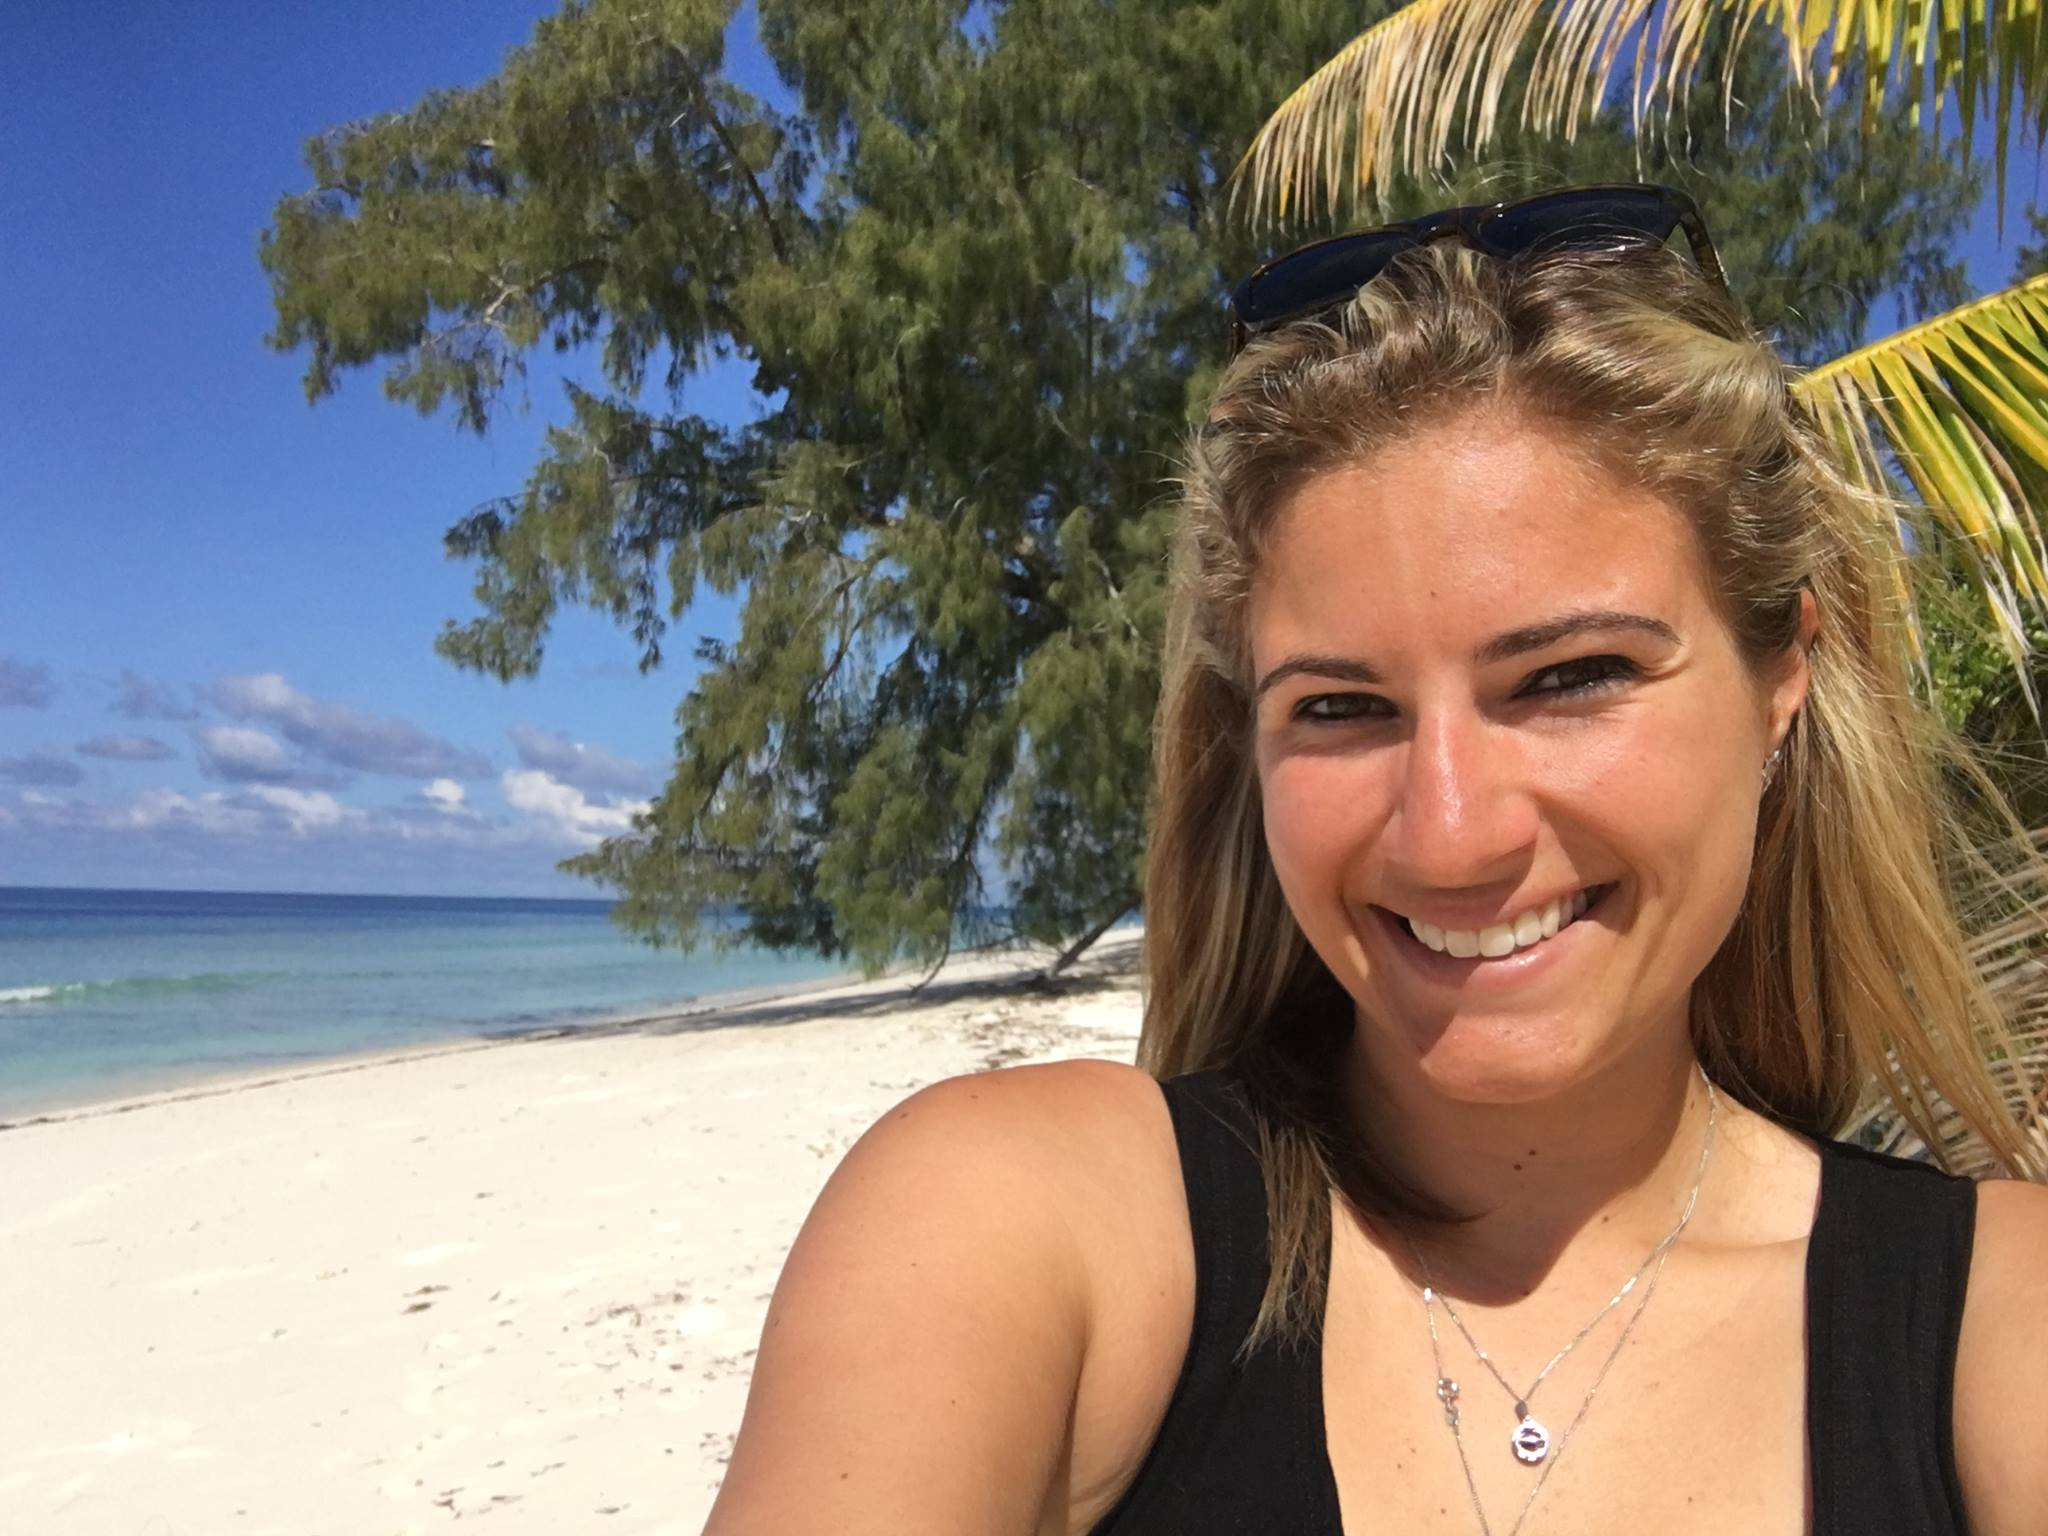 Interview: Lauren Peel, Project Leader for The Manta Trust's Seychelles Manta Ray Project